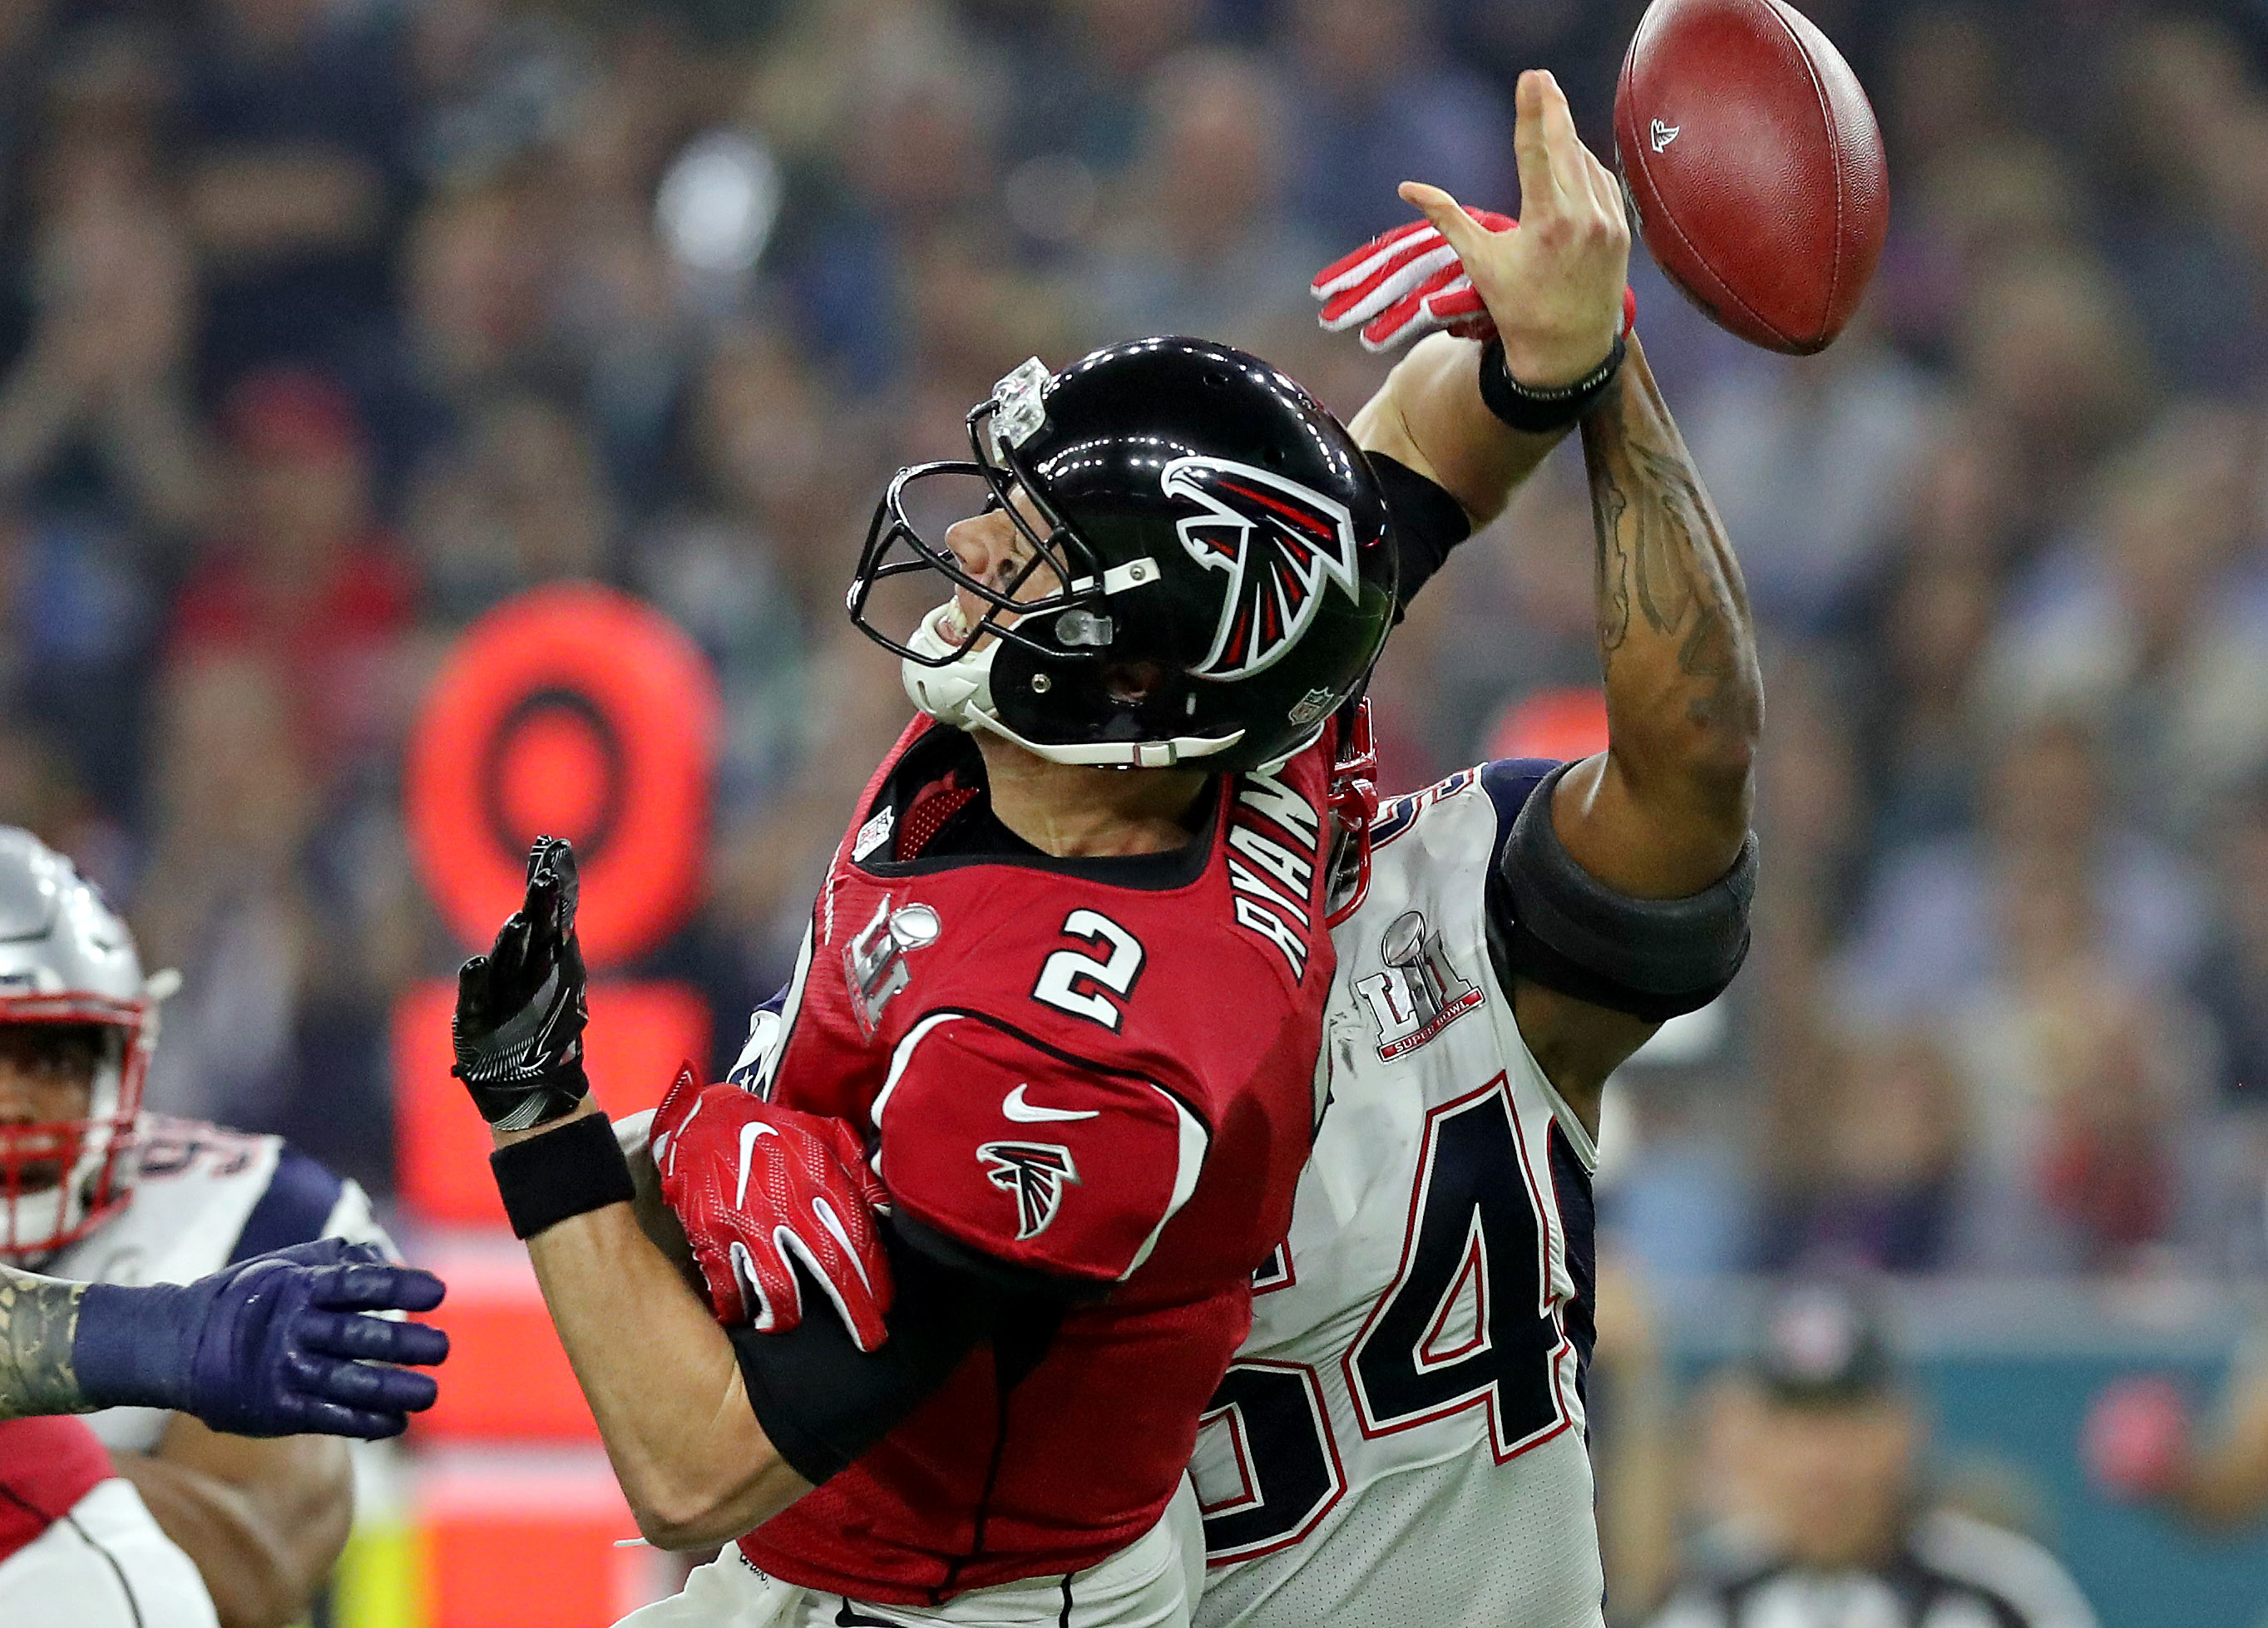 Patriots force fumble on Falcons - Super Bowl 51